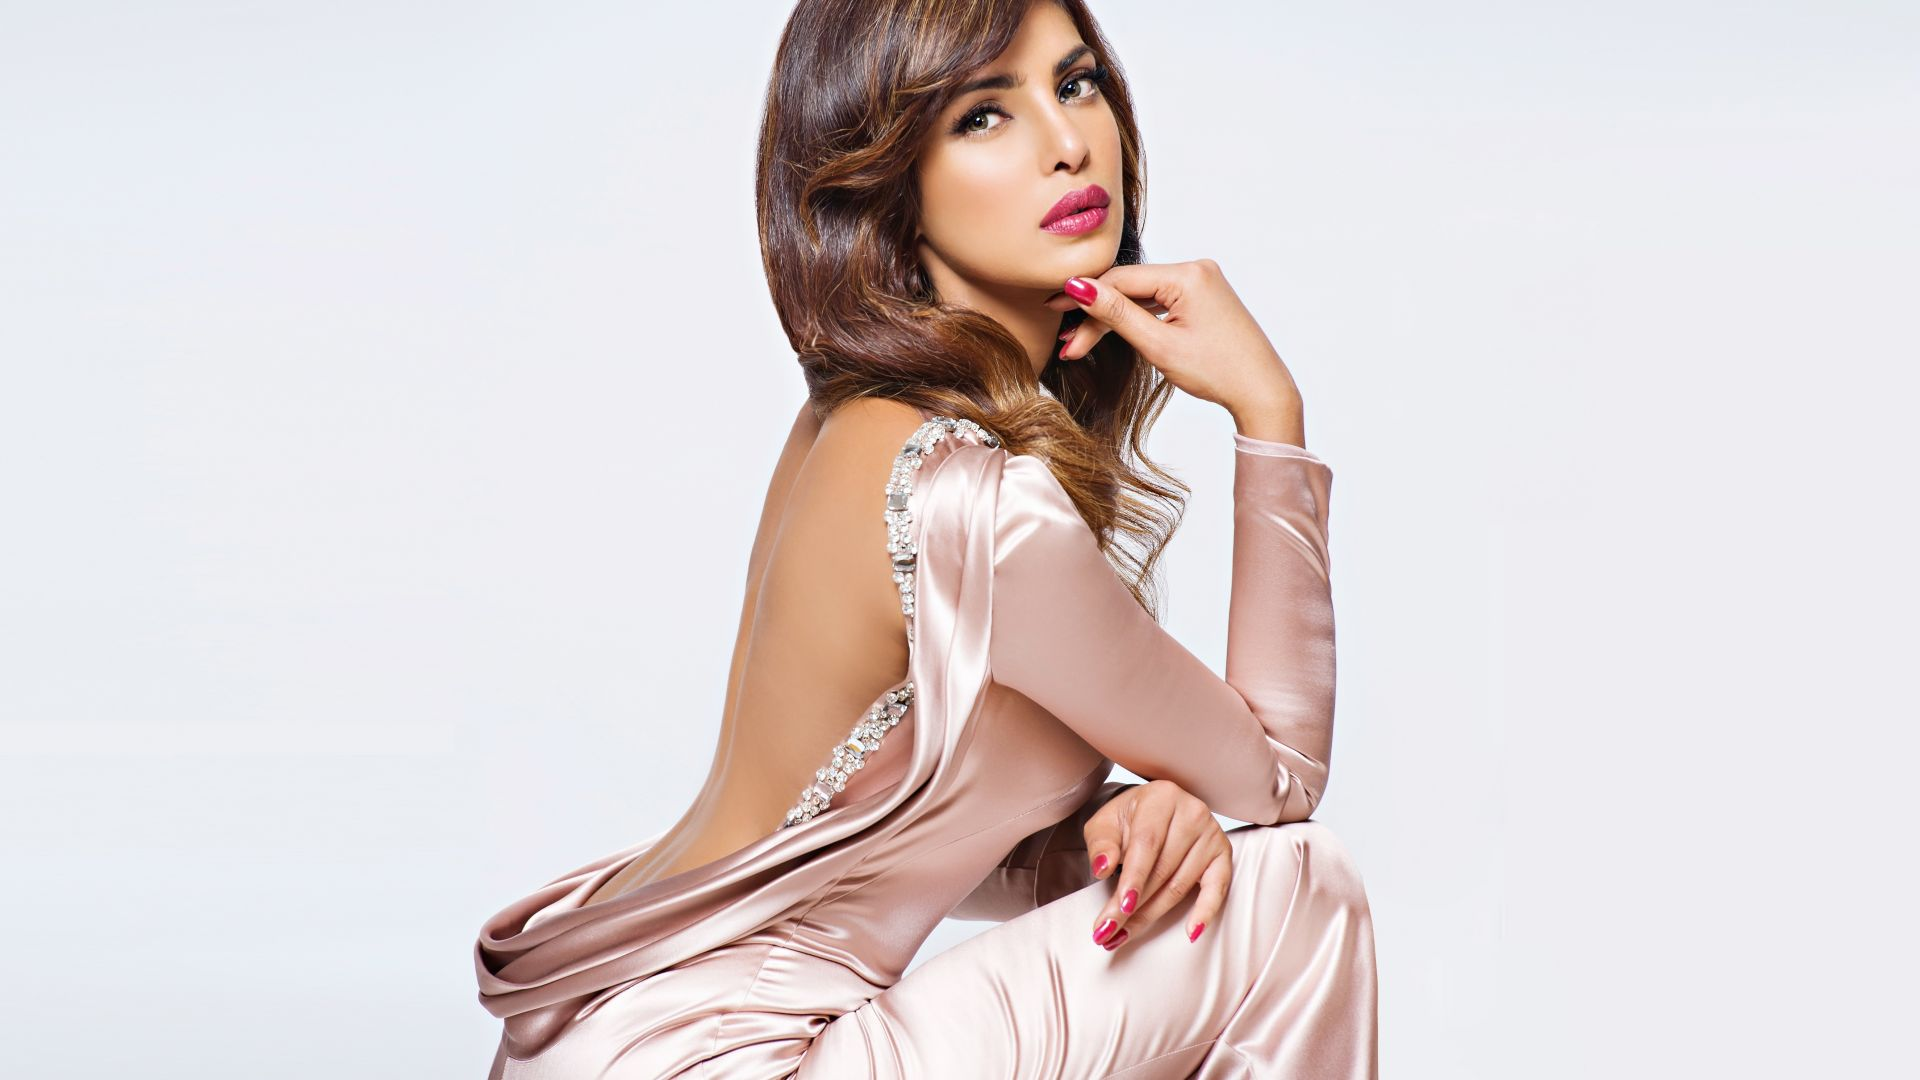 Hot pictures of priyanka Hot Pictures of Priyanka Chopra POPSUGAR Celebrity